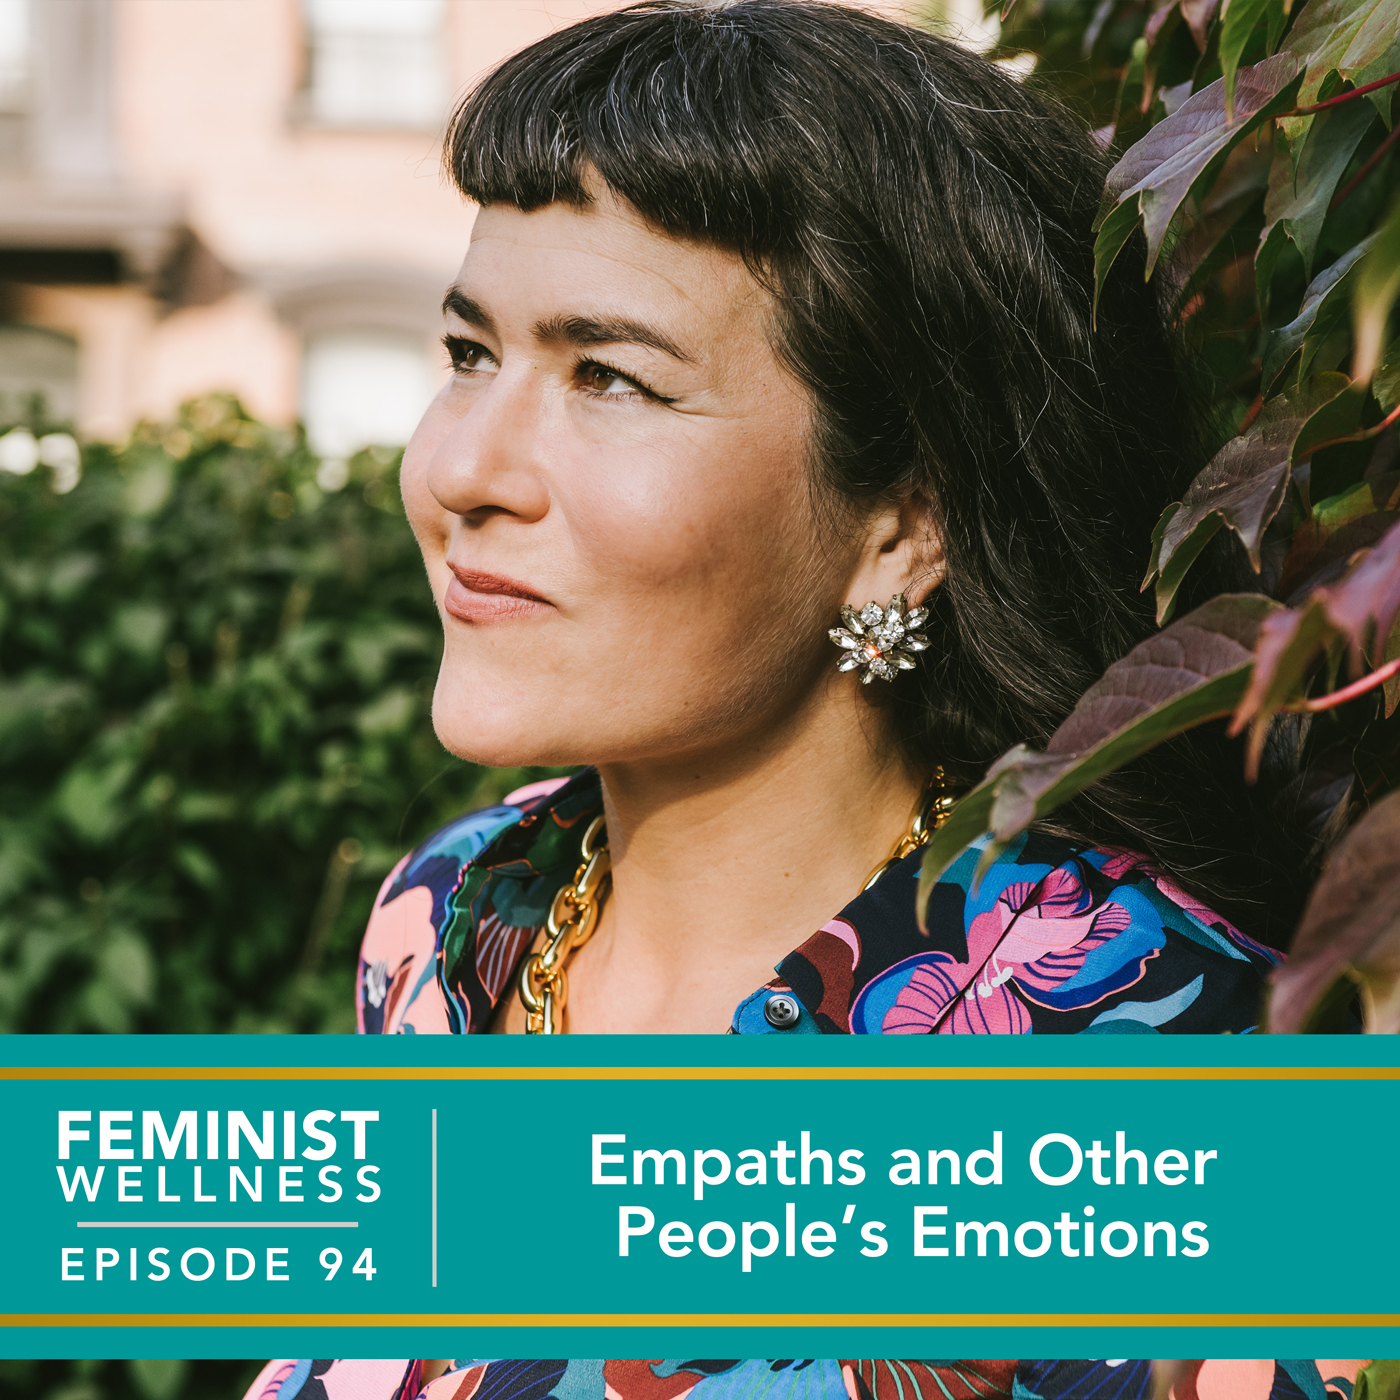 Empaths and Other People's Emotions